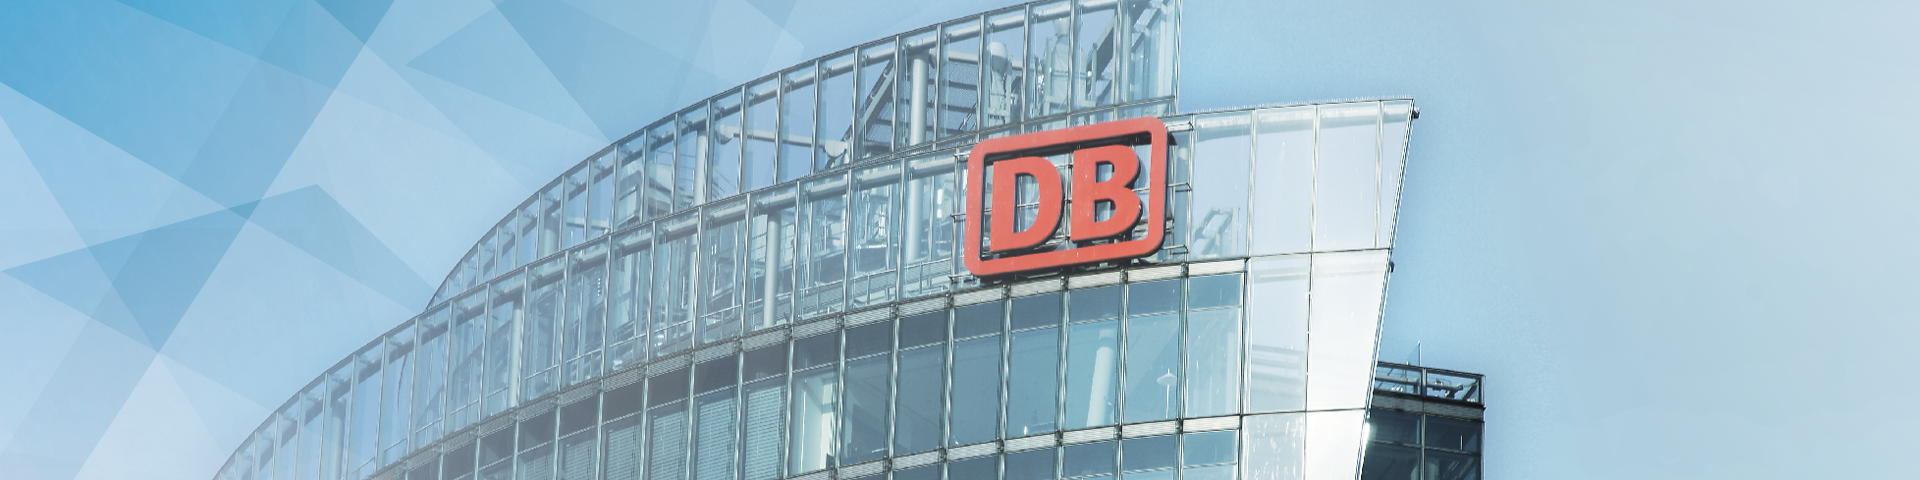 DB Systel_Management Board_DB Tower-Head Office